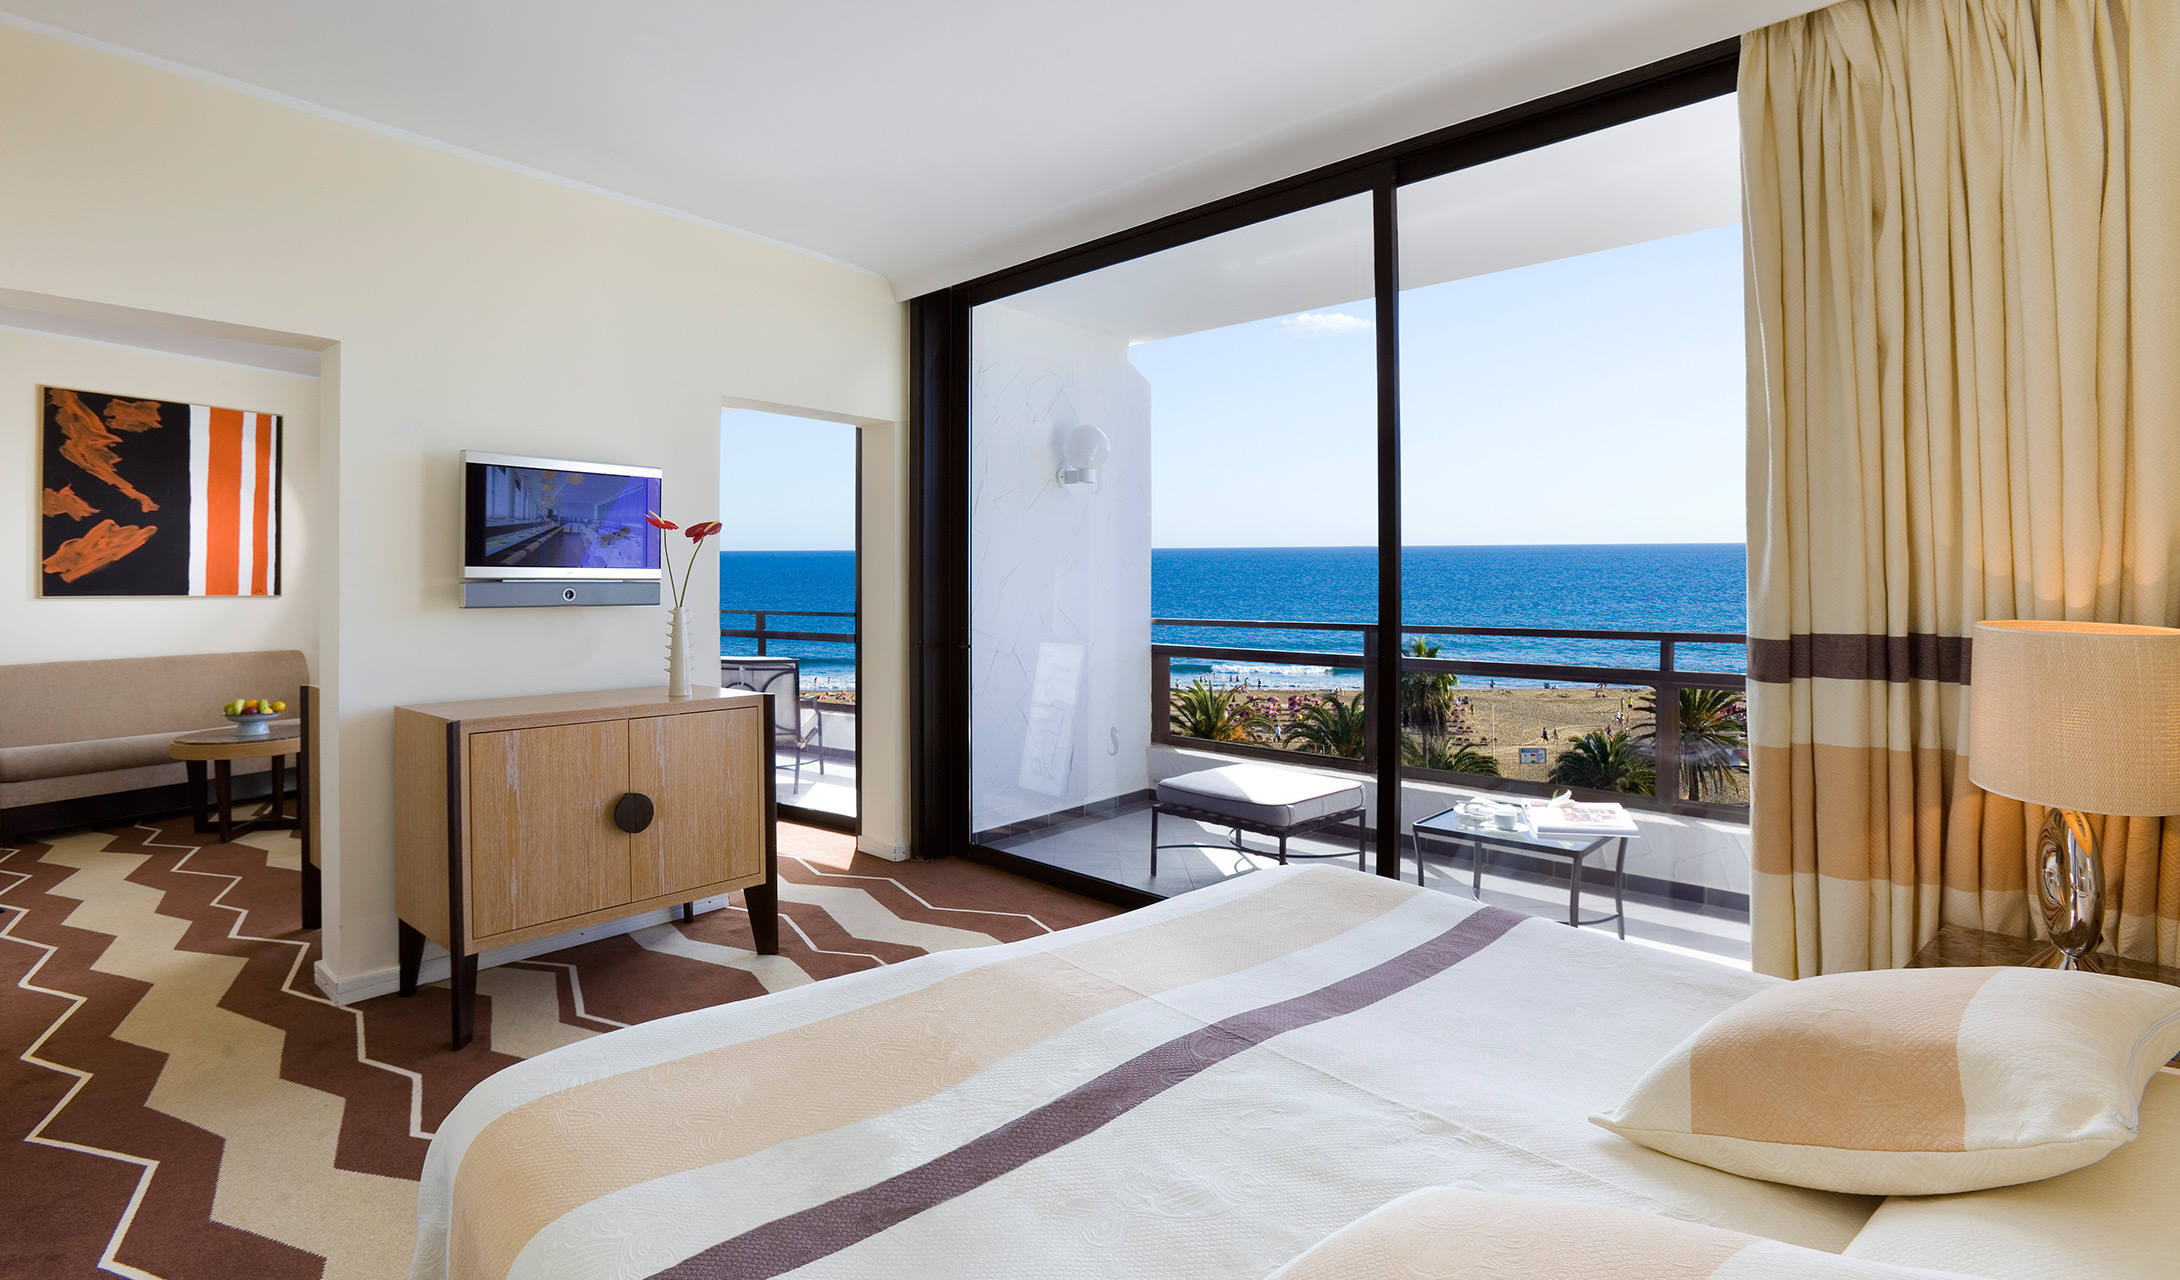 Seaside palm beach maspalomas spain design hotels for M design hotel